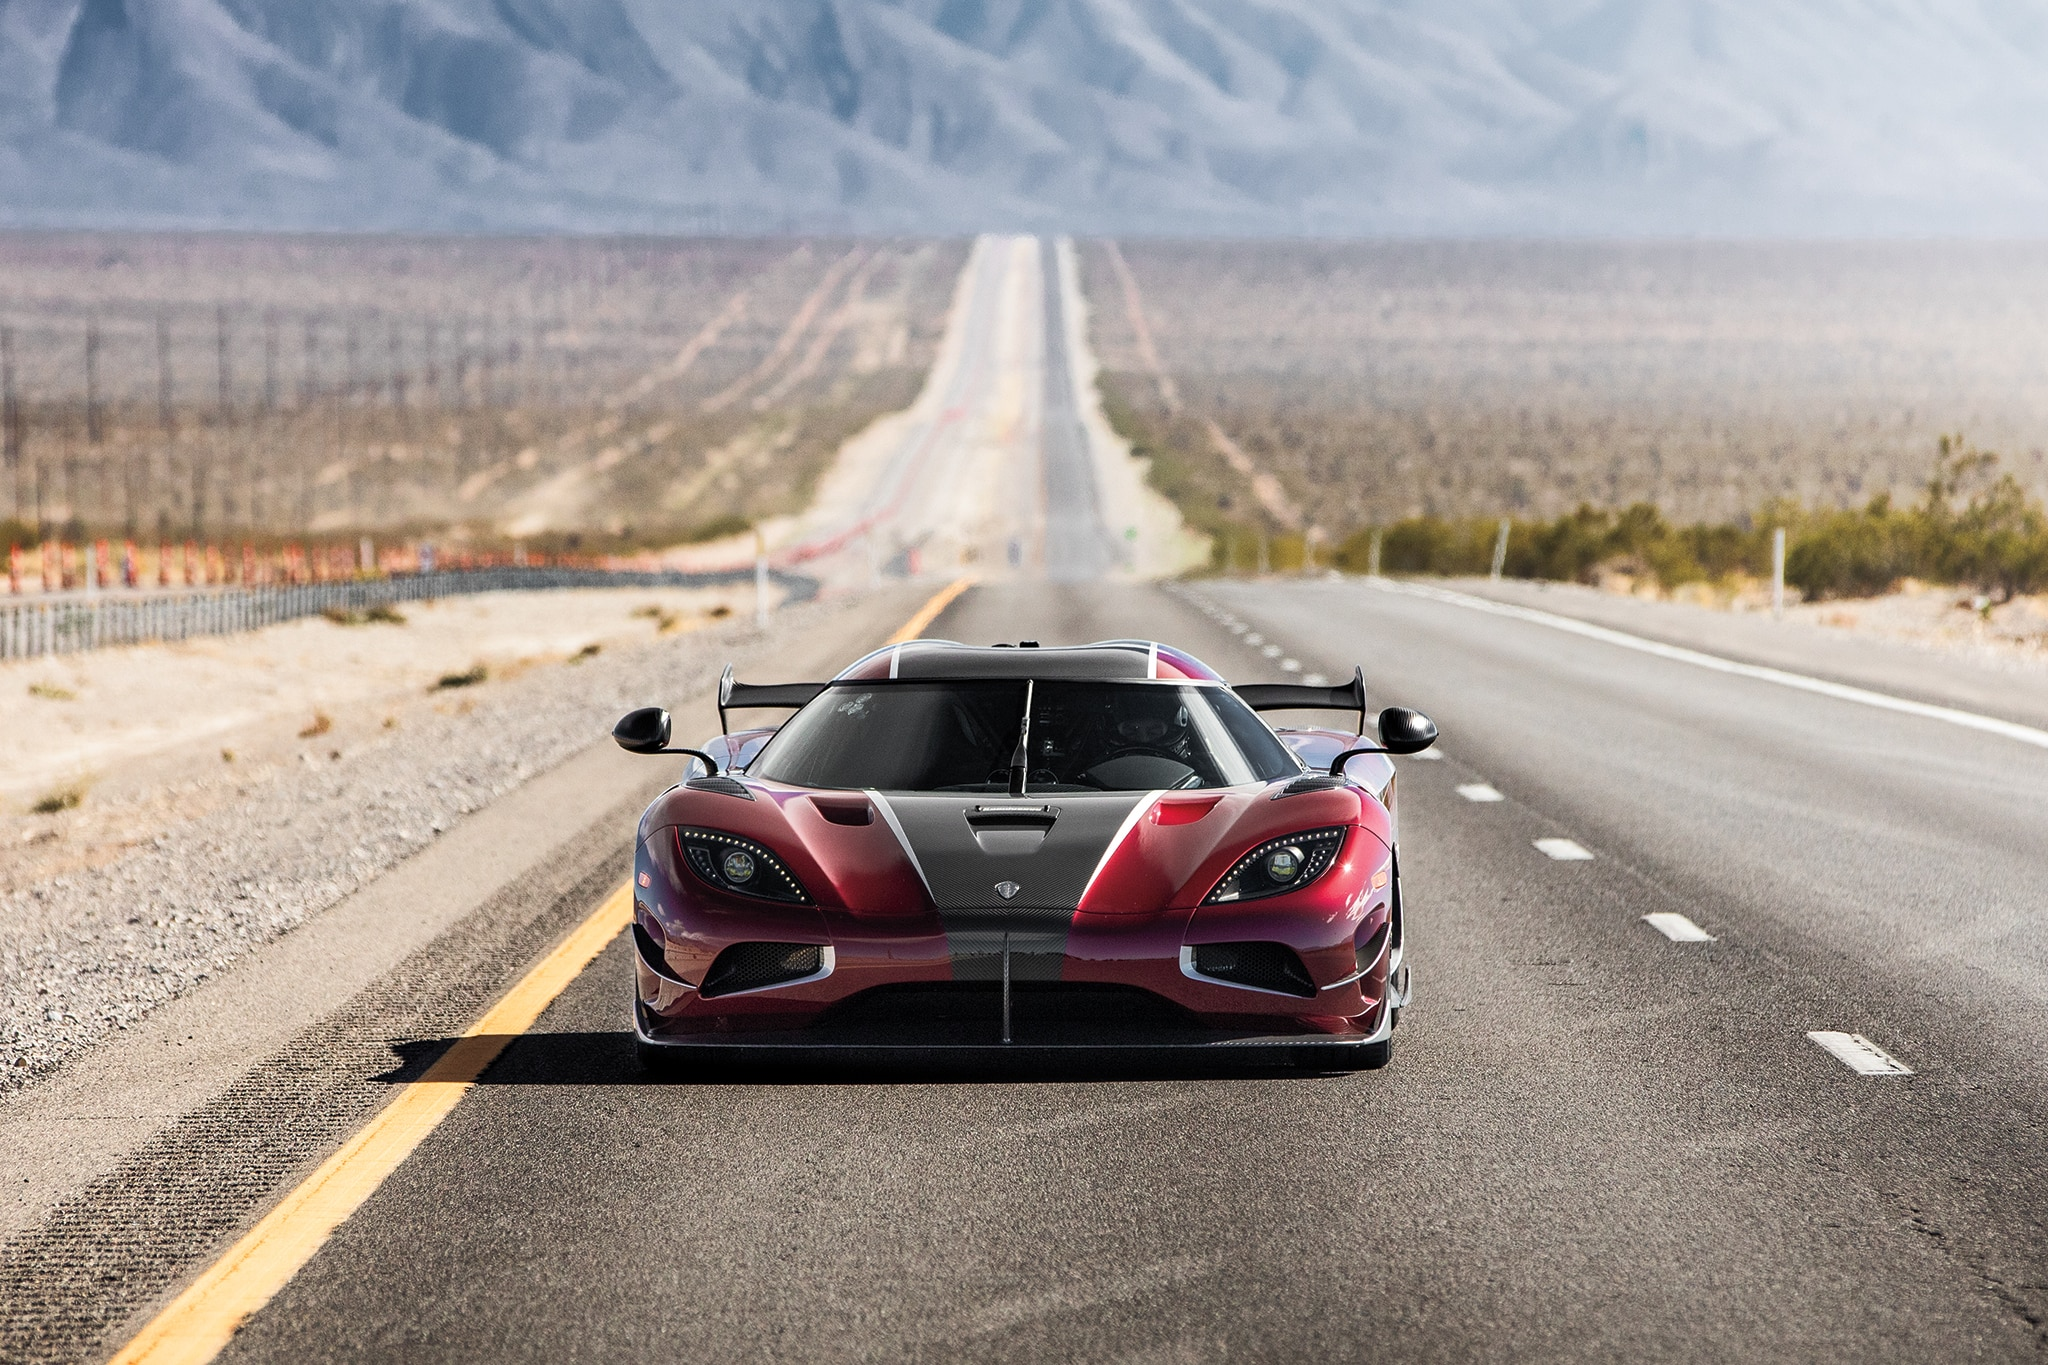 The Book Of Acts The Tale Of The World Record Setting Koenigsegg